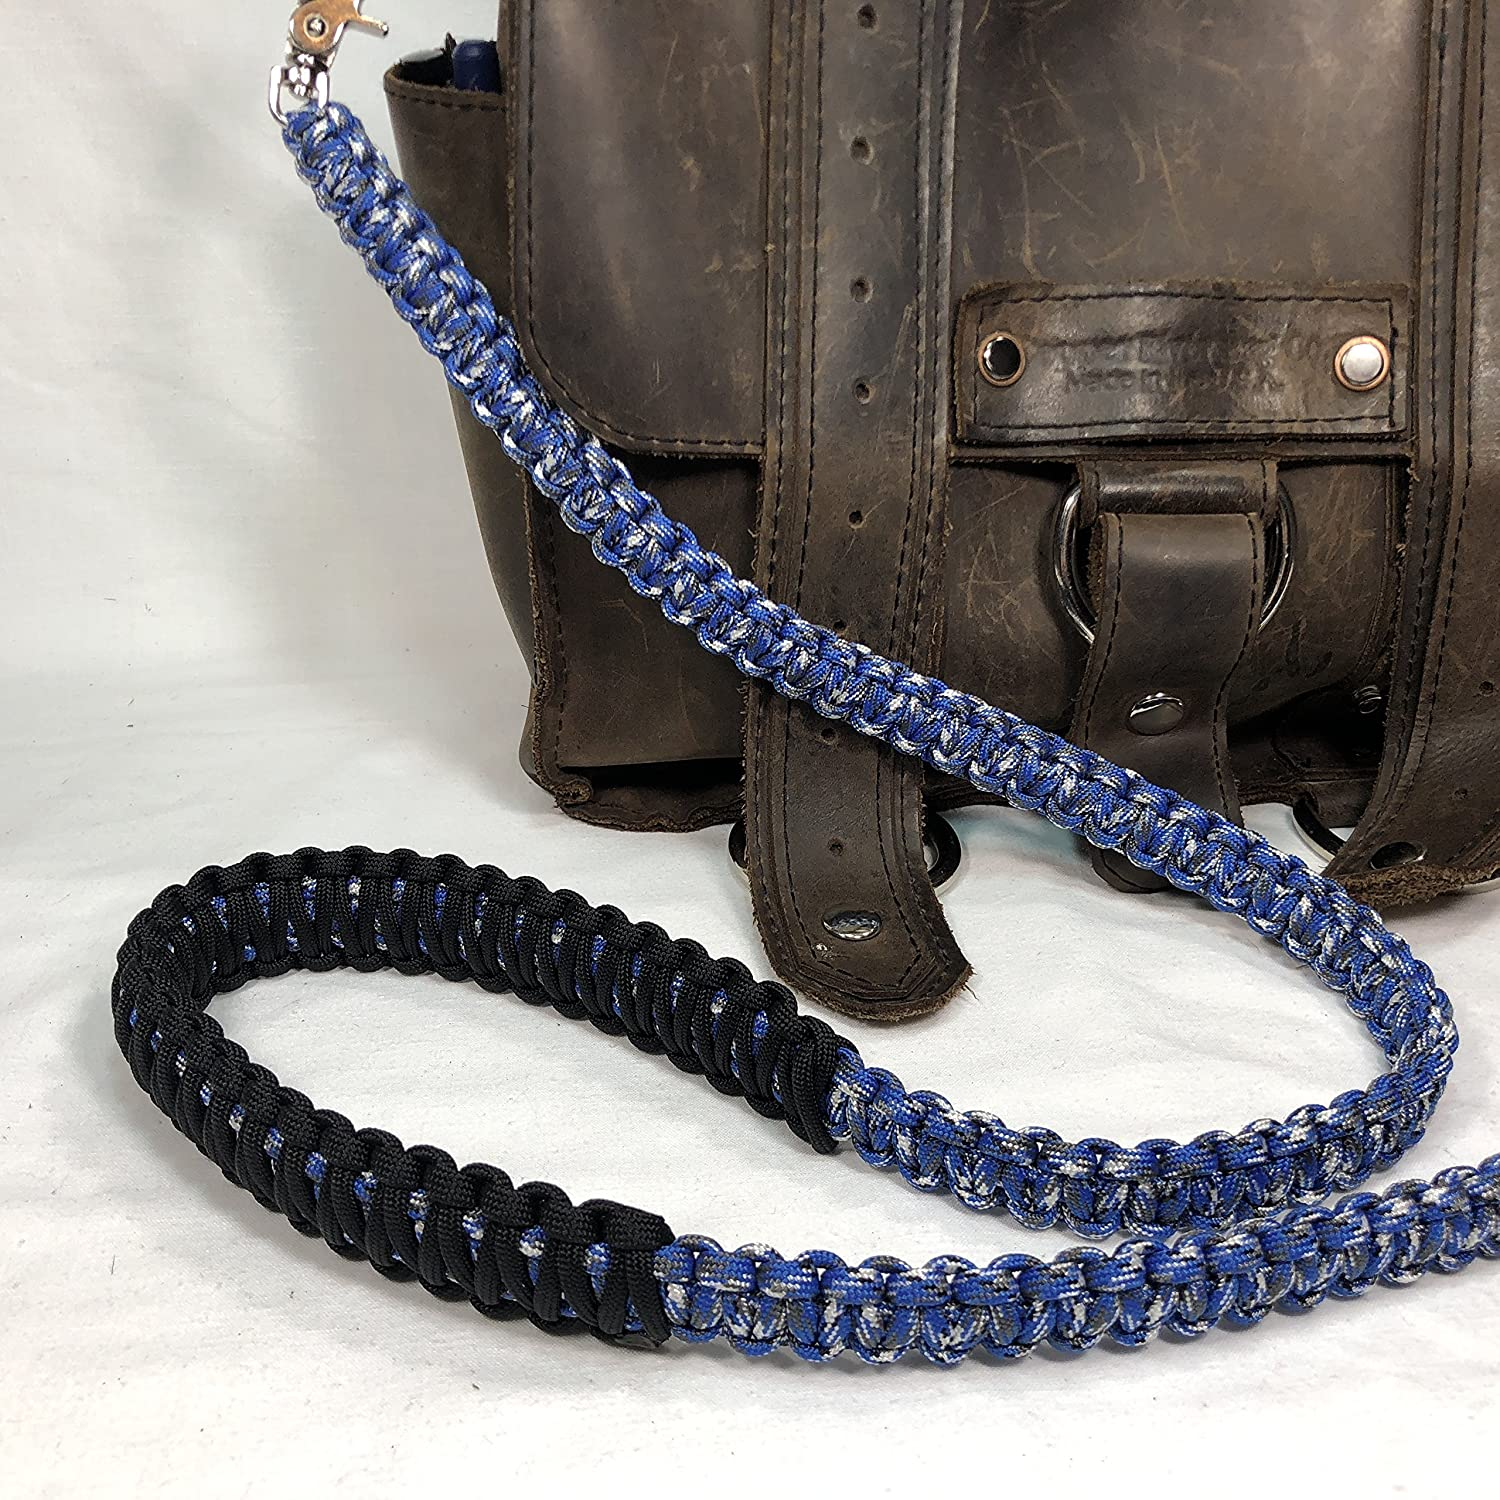 Blue Camo Paracord Cross Shoulder Strap, Handbag, Satchel Strap, Duffel Bag